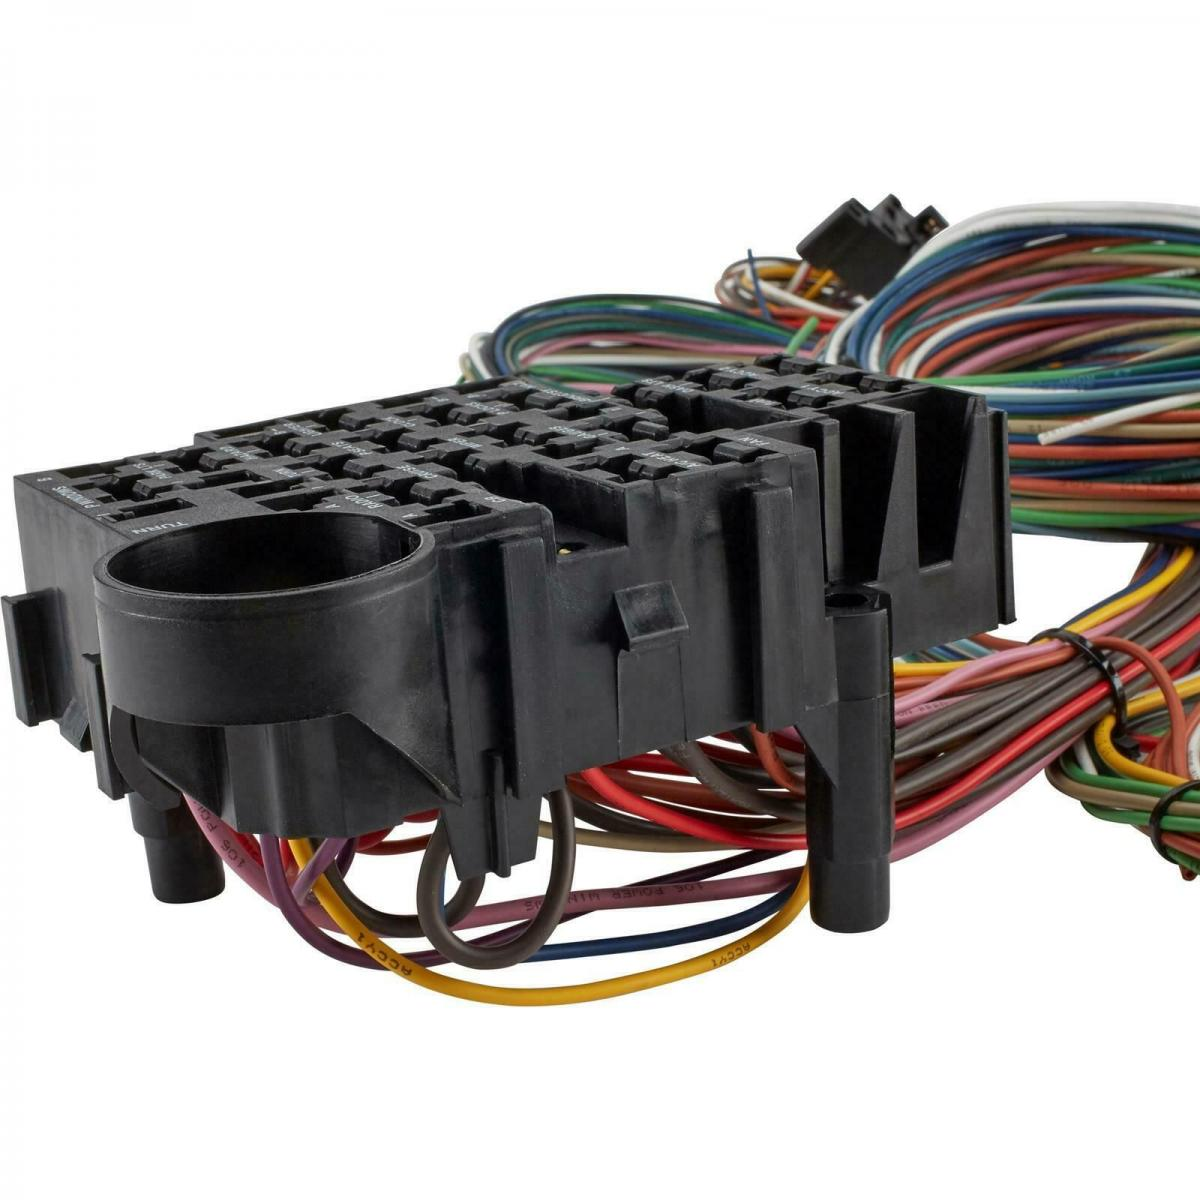 Eazy Wiring 22 Circuit Wiring Harness Kit